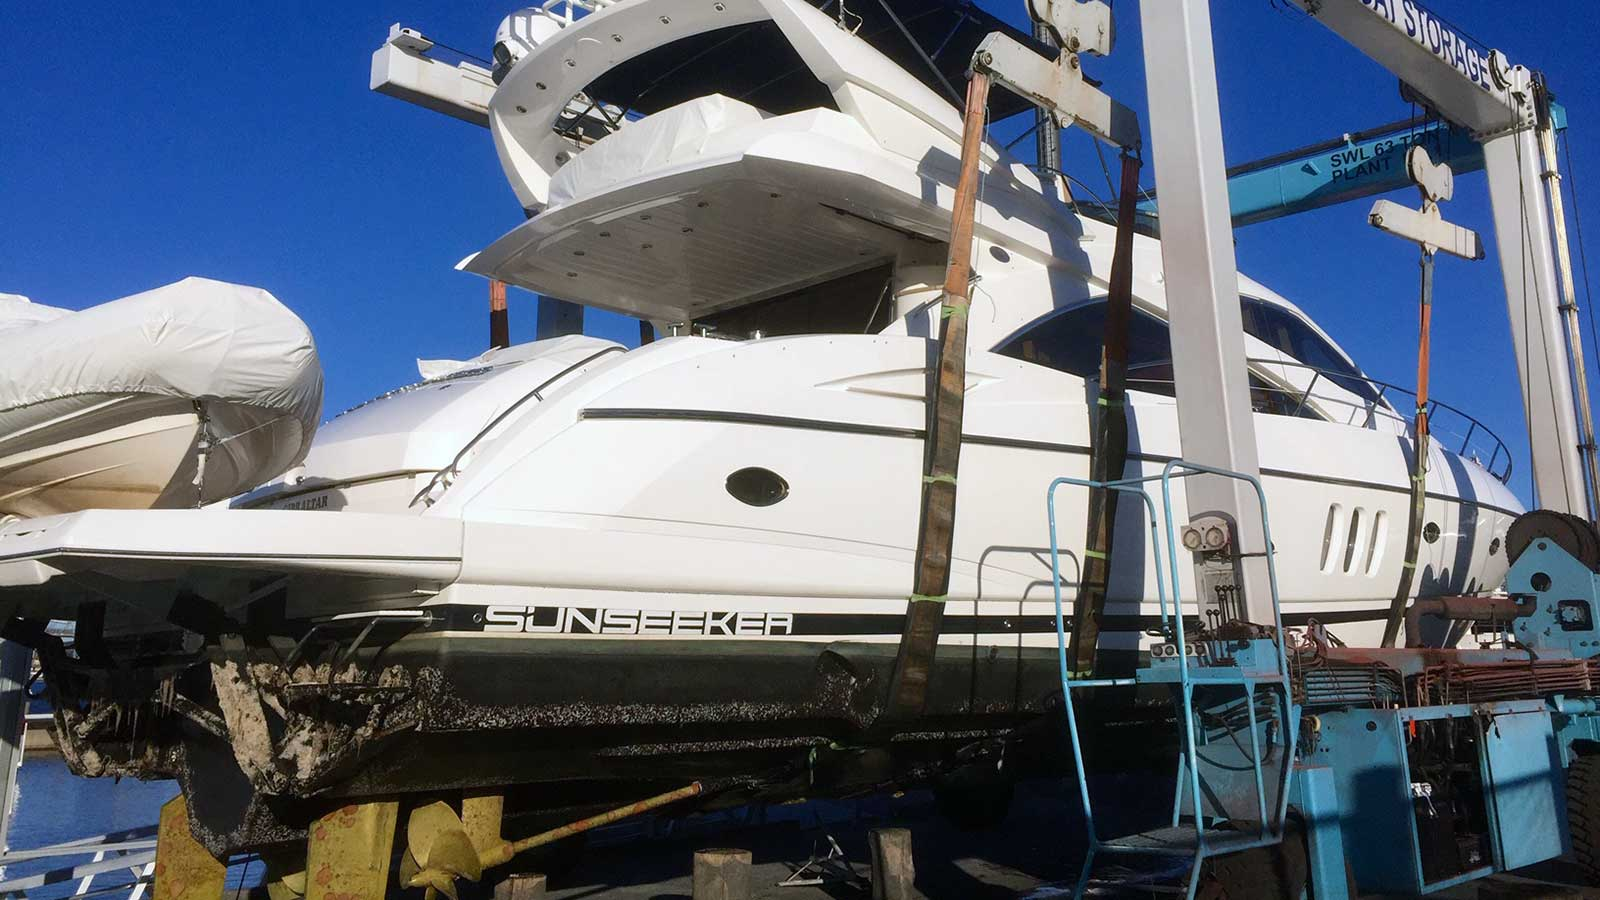 We organise and supervise the annual service for luxury motor boats in Sydney, Australia